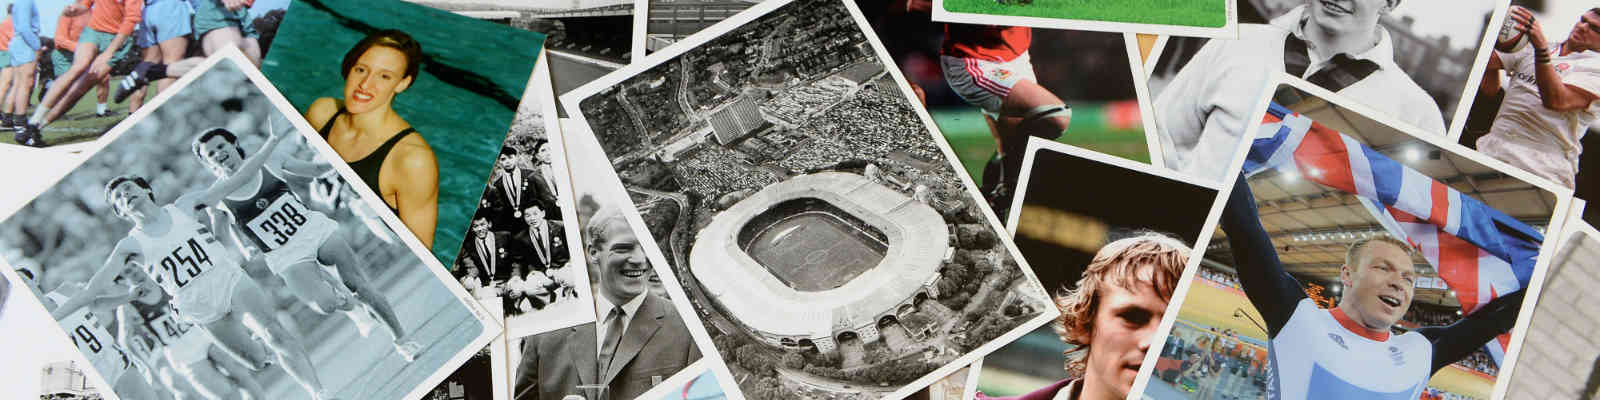 Sporting Memories photo collage